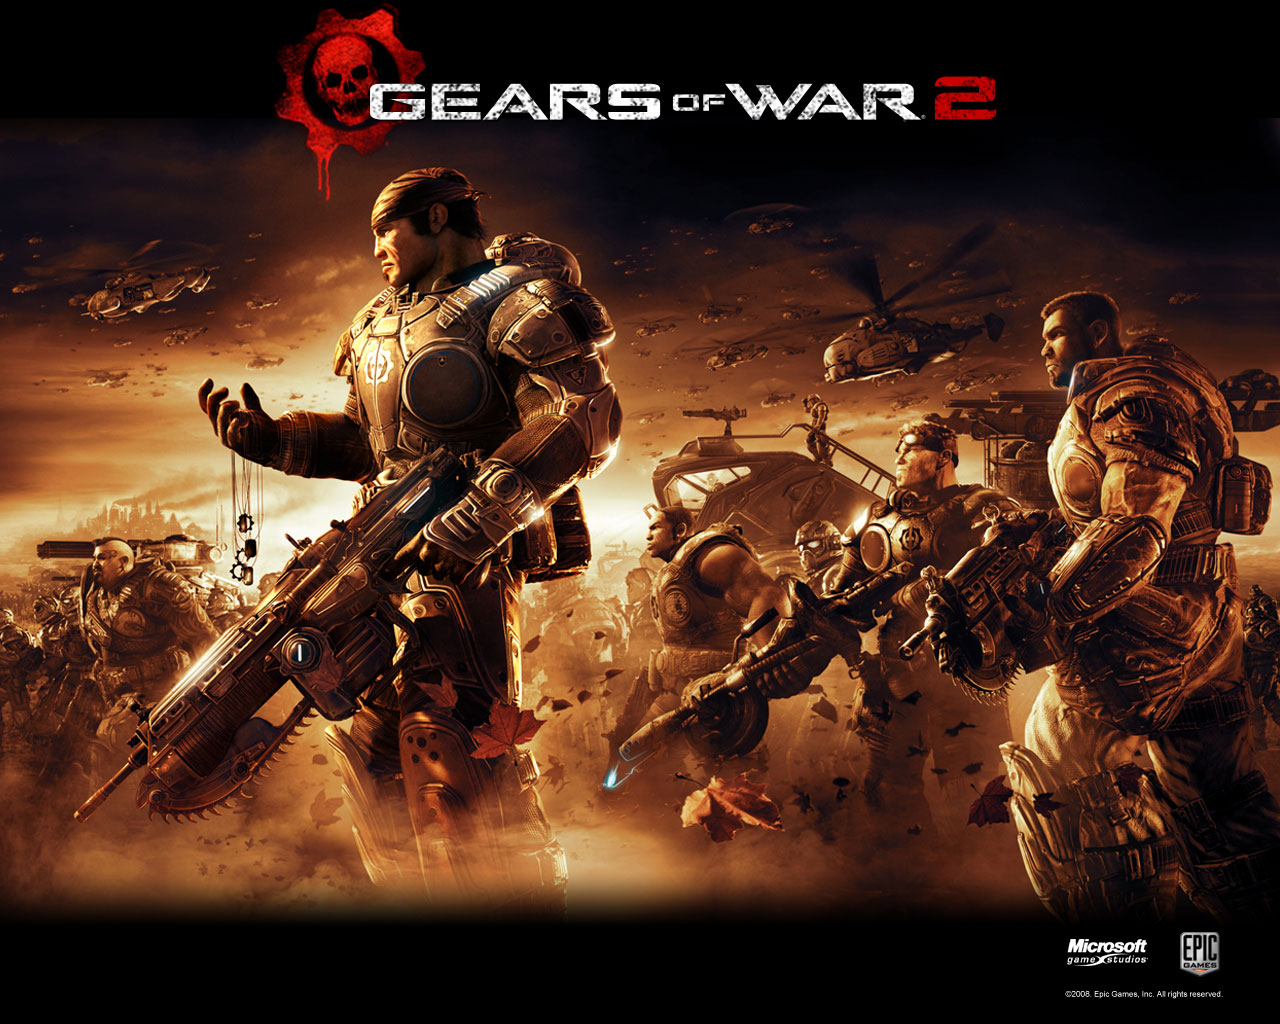 http://3.bp.blogspot.com/-RJY5d6CiZPg/TedPUSBEjWI/AAAAAAAAASE/NN_nOXSxU4s/s1600/3434-video_games_gears_of_war_2_wallpaper.jpg